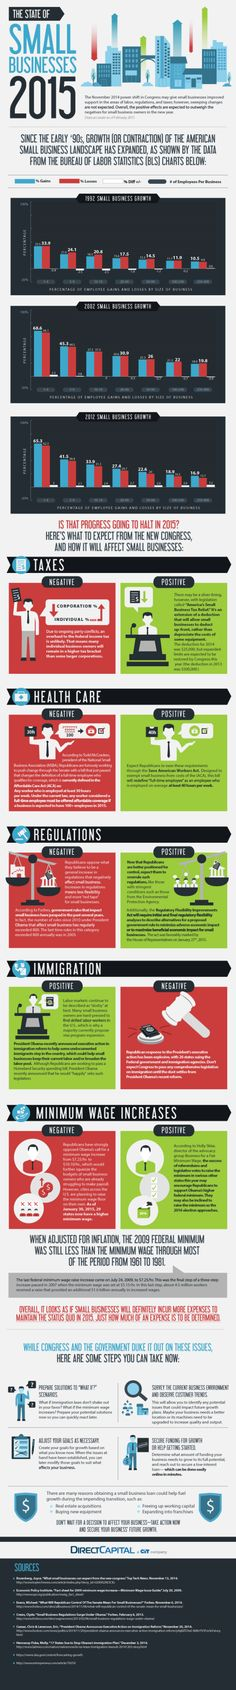 The State of Small Businesses 2015 (Infographic)